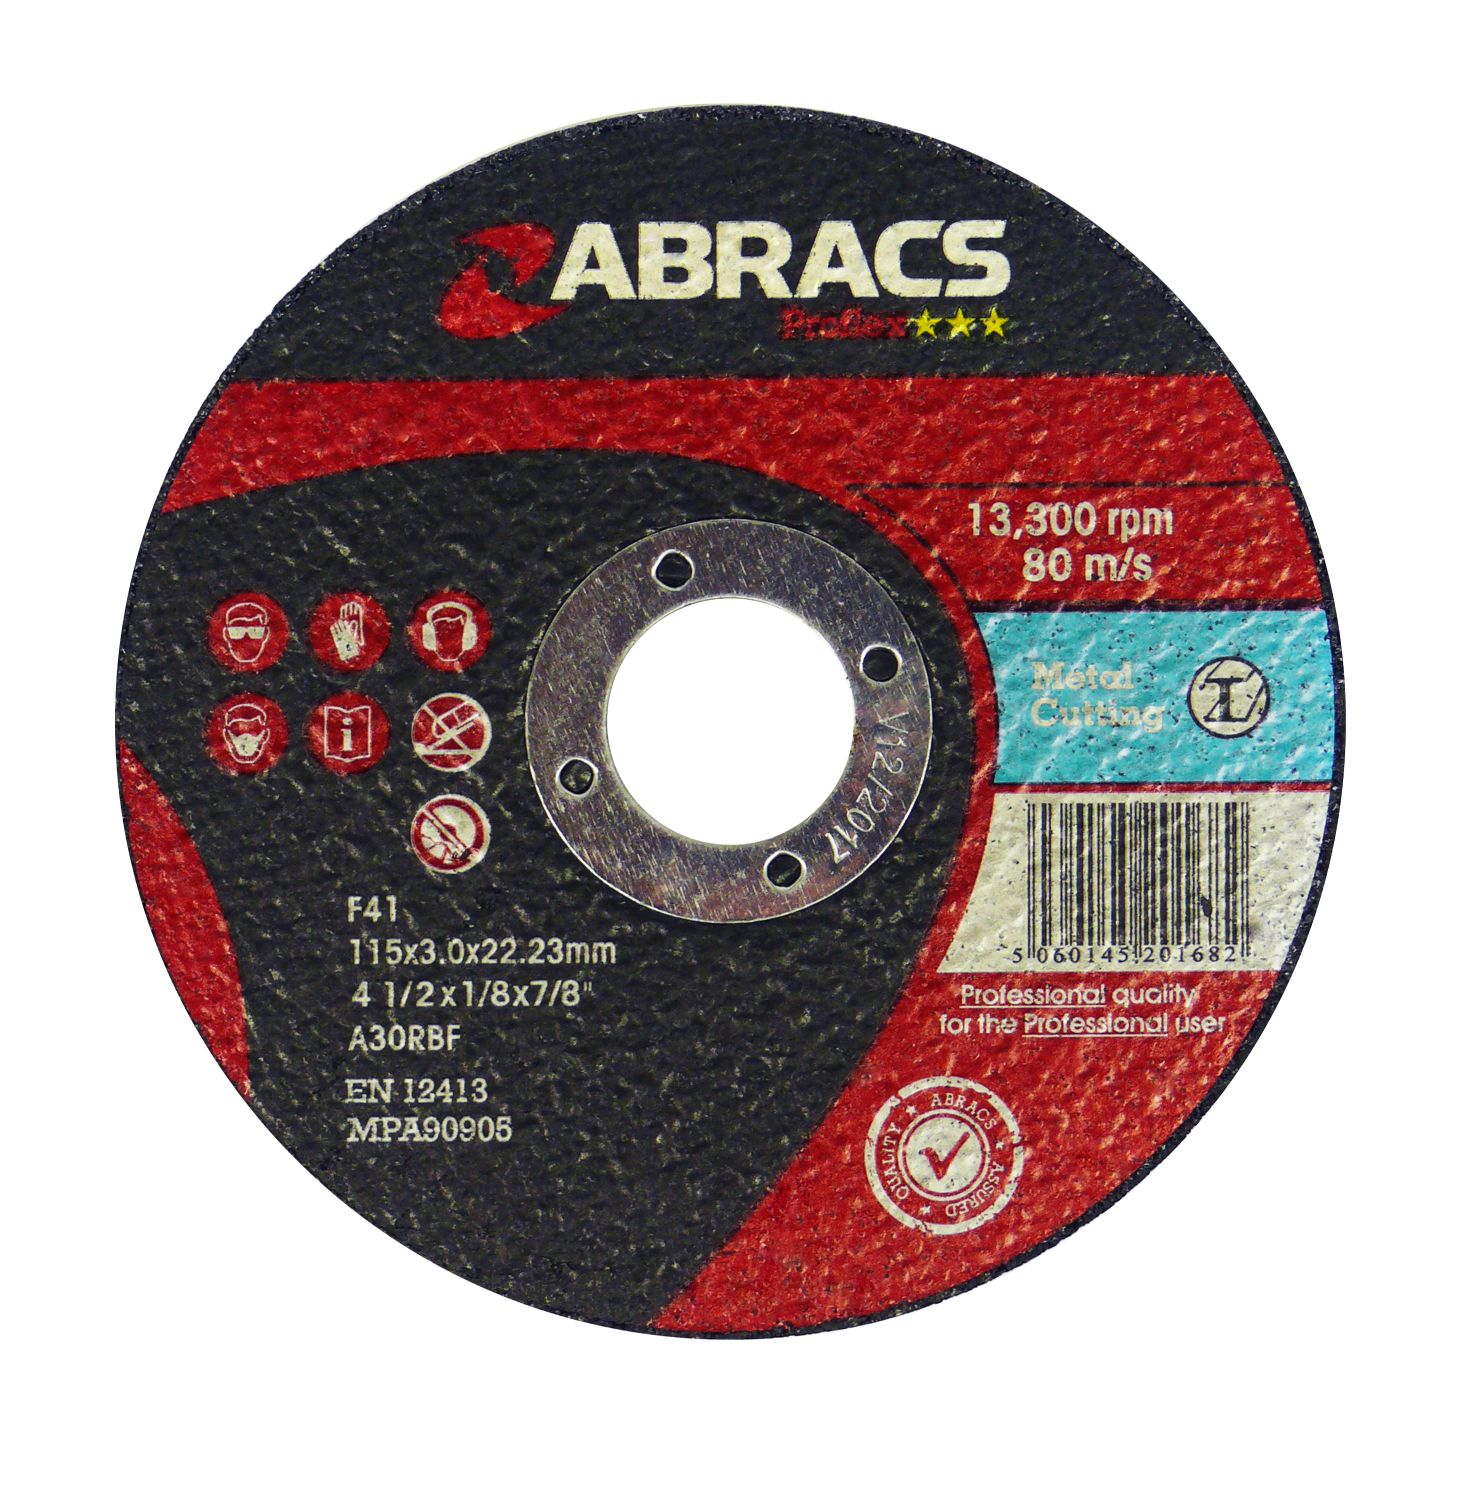 METAL CUTTING DISC - FLAT 125 X 3.0 X 22MM